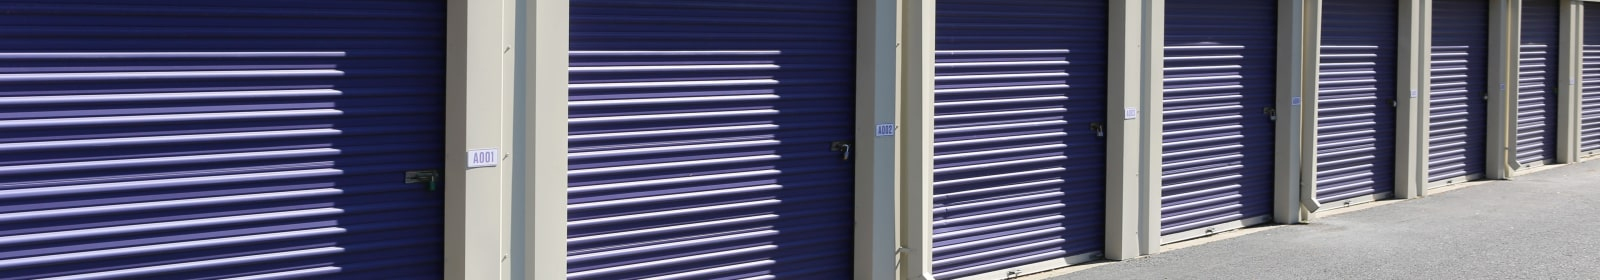 Information about the neighborhood at StoreSmart Self-Storage in Englewood, Florida